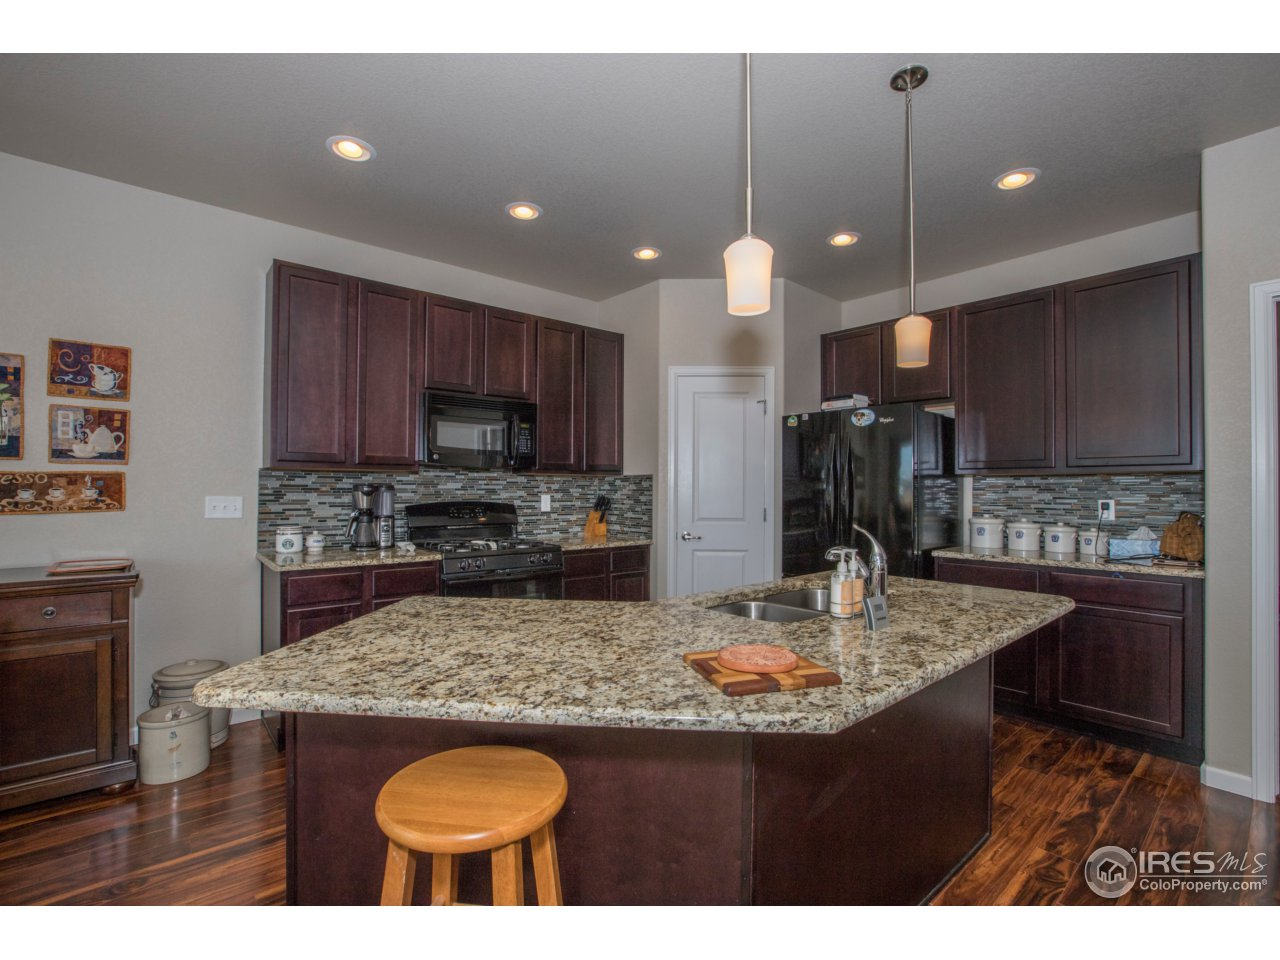 Generously sized kitchen for the gatherings